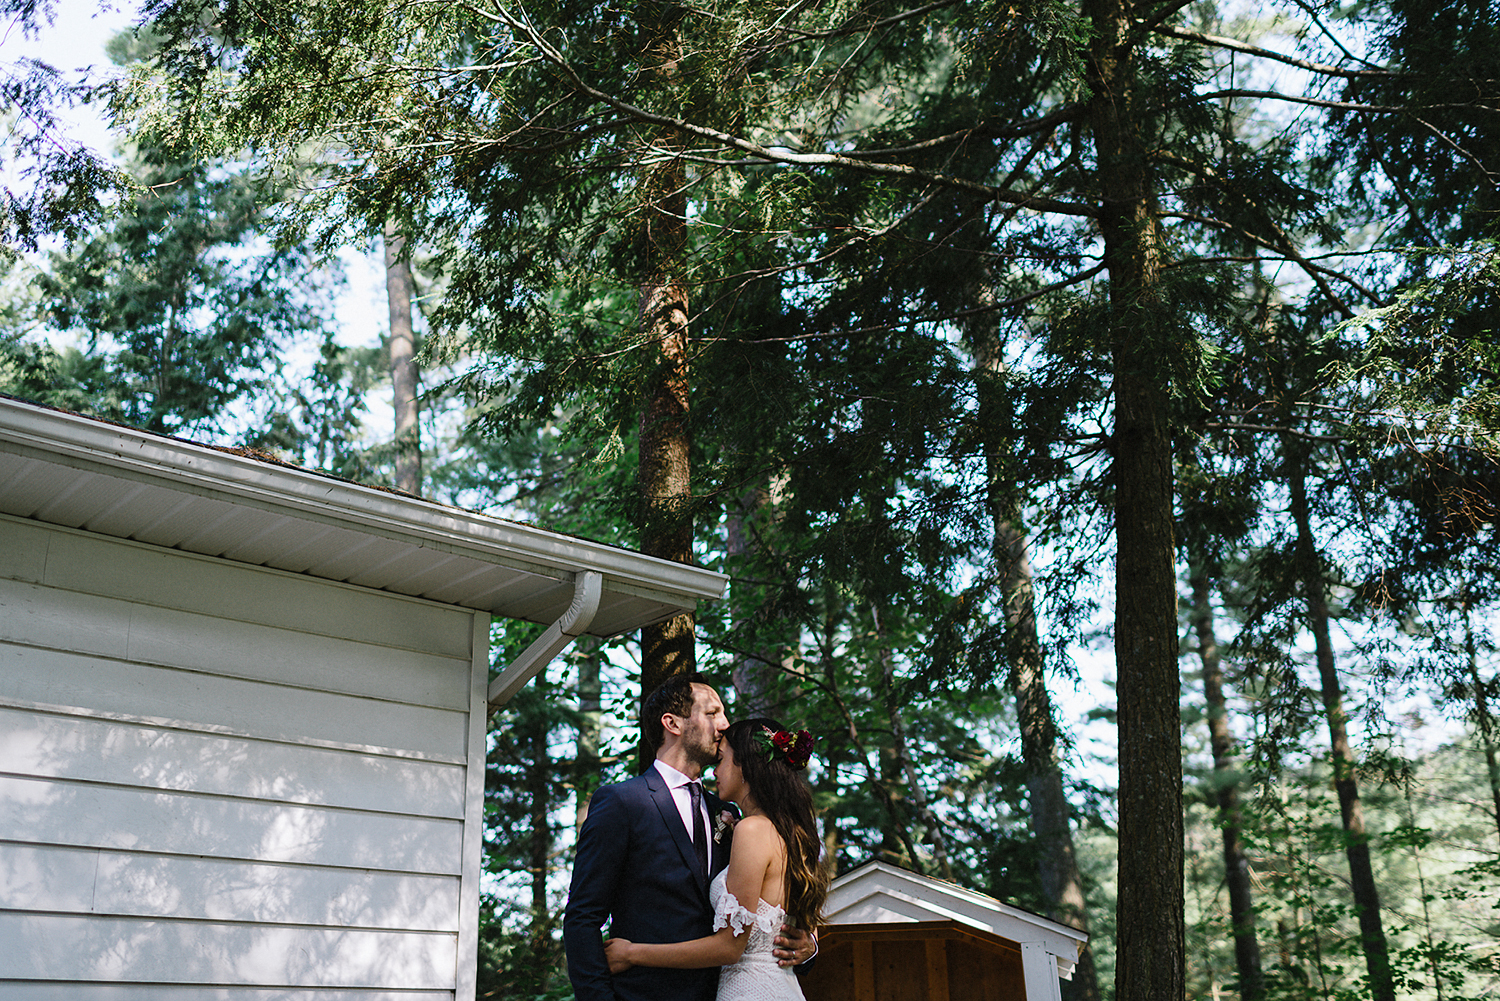 Muskoka-Cottage-Wedding-Photography-Photographer_Photojournalistic-Documentary-Wedding-Photography_Vintage-Bride-Lovers-Land-Dress_Rue-Des-Seins_Forest-Ceremony-Bride-and-Groom-Intimate-Lakeside-.jpg